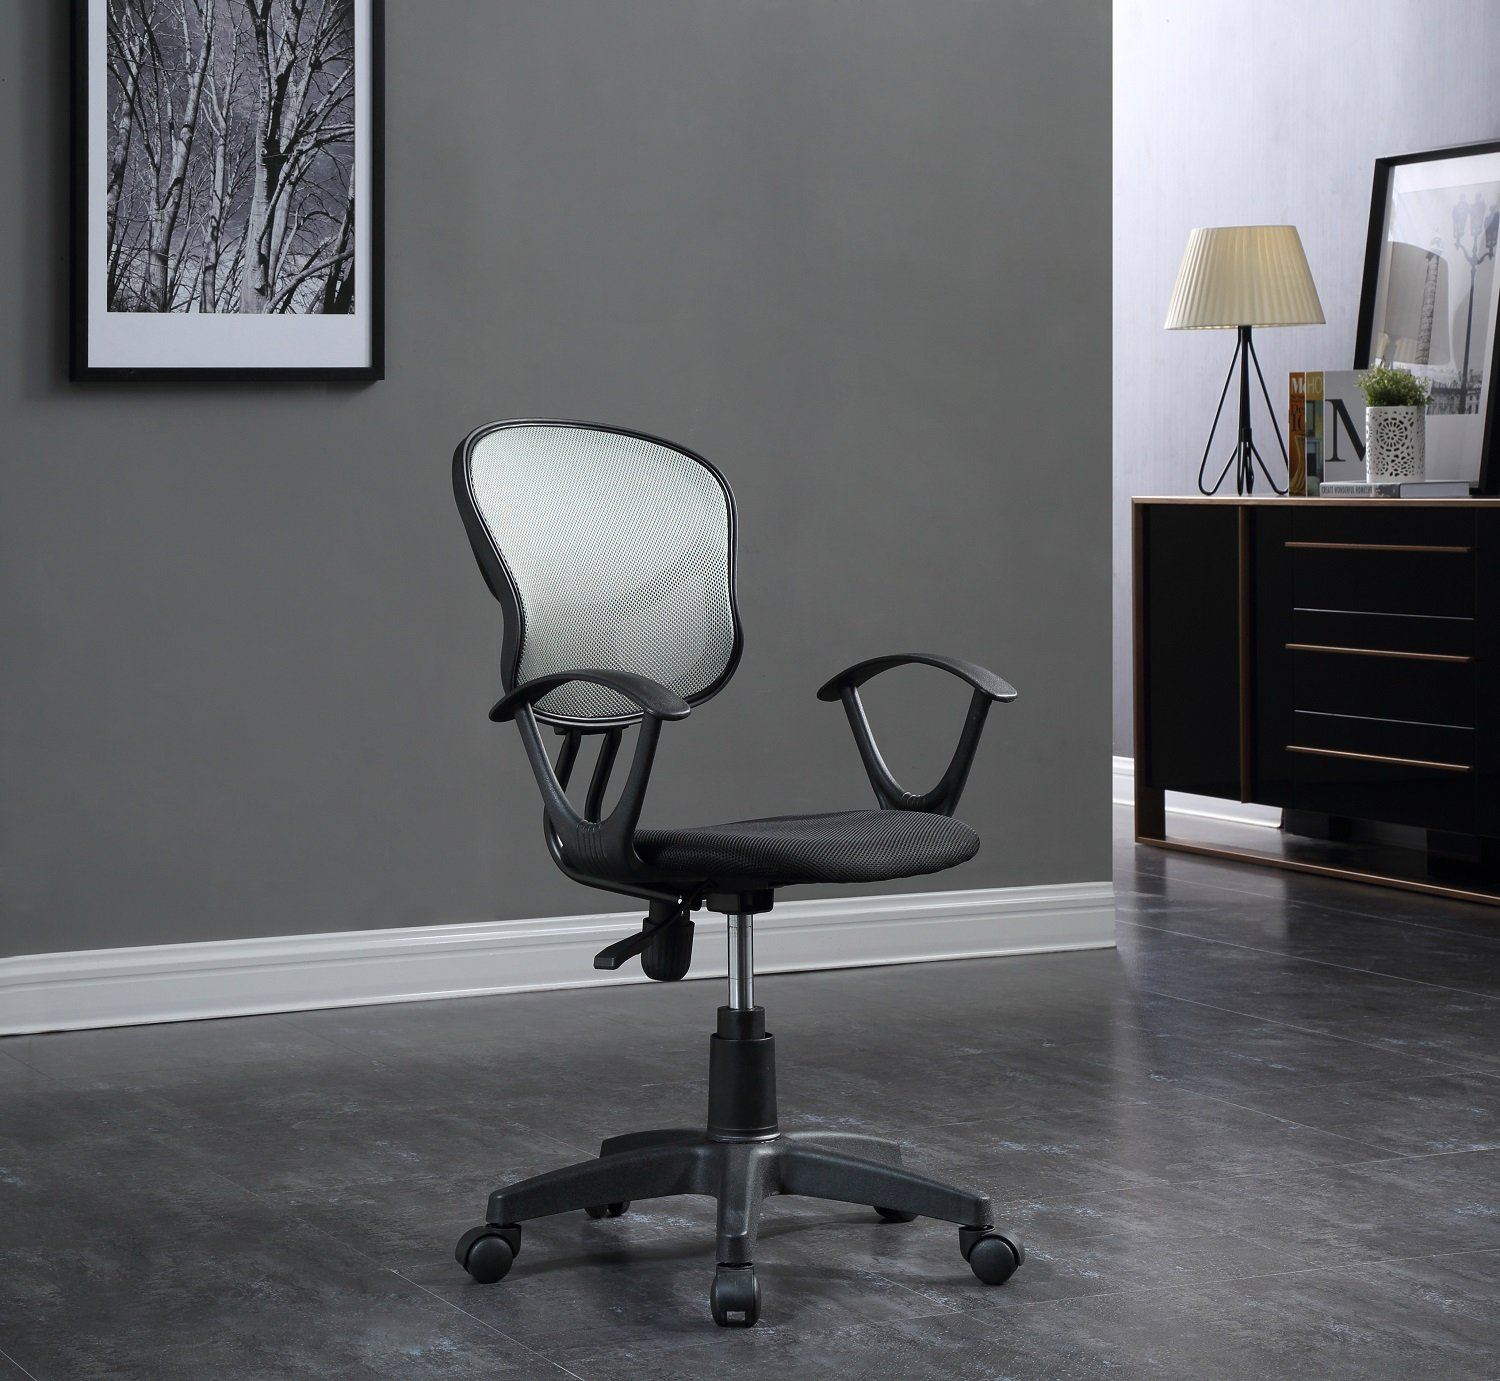 Hodedah Mesh Office Chair with Arms, Adjustable Height, and Swivel Functionality, Grey by HODEDAH IMPORT (Image #5)